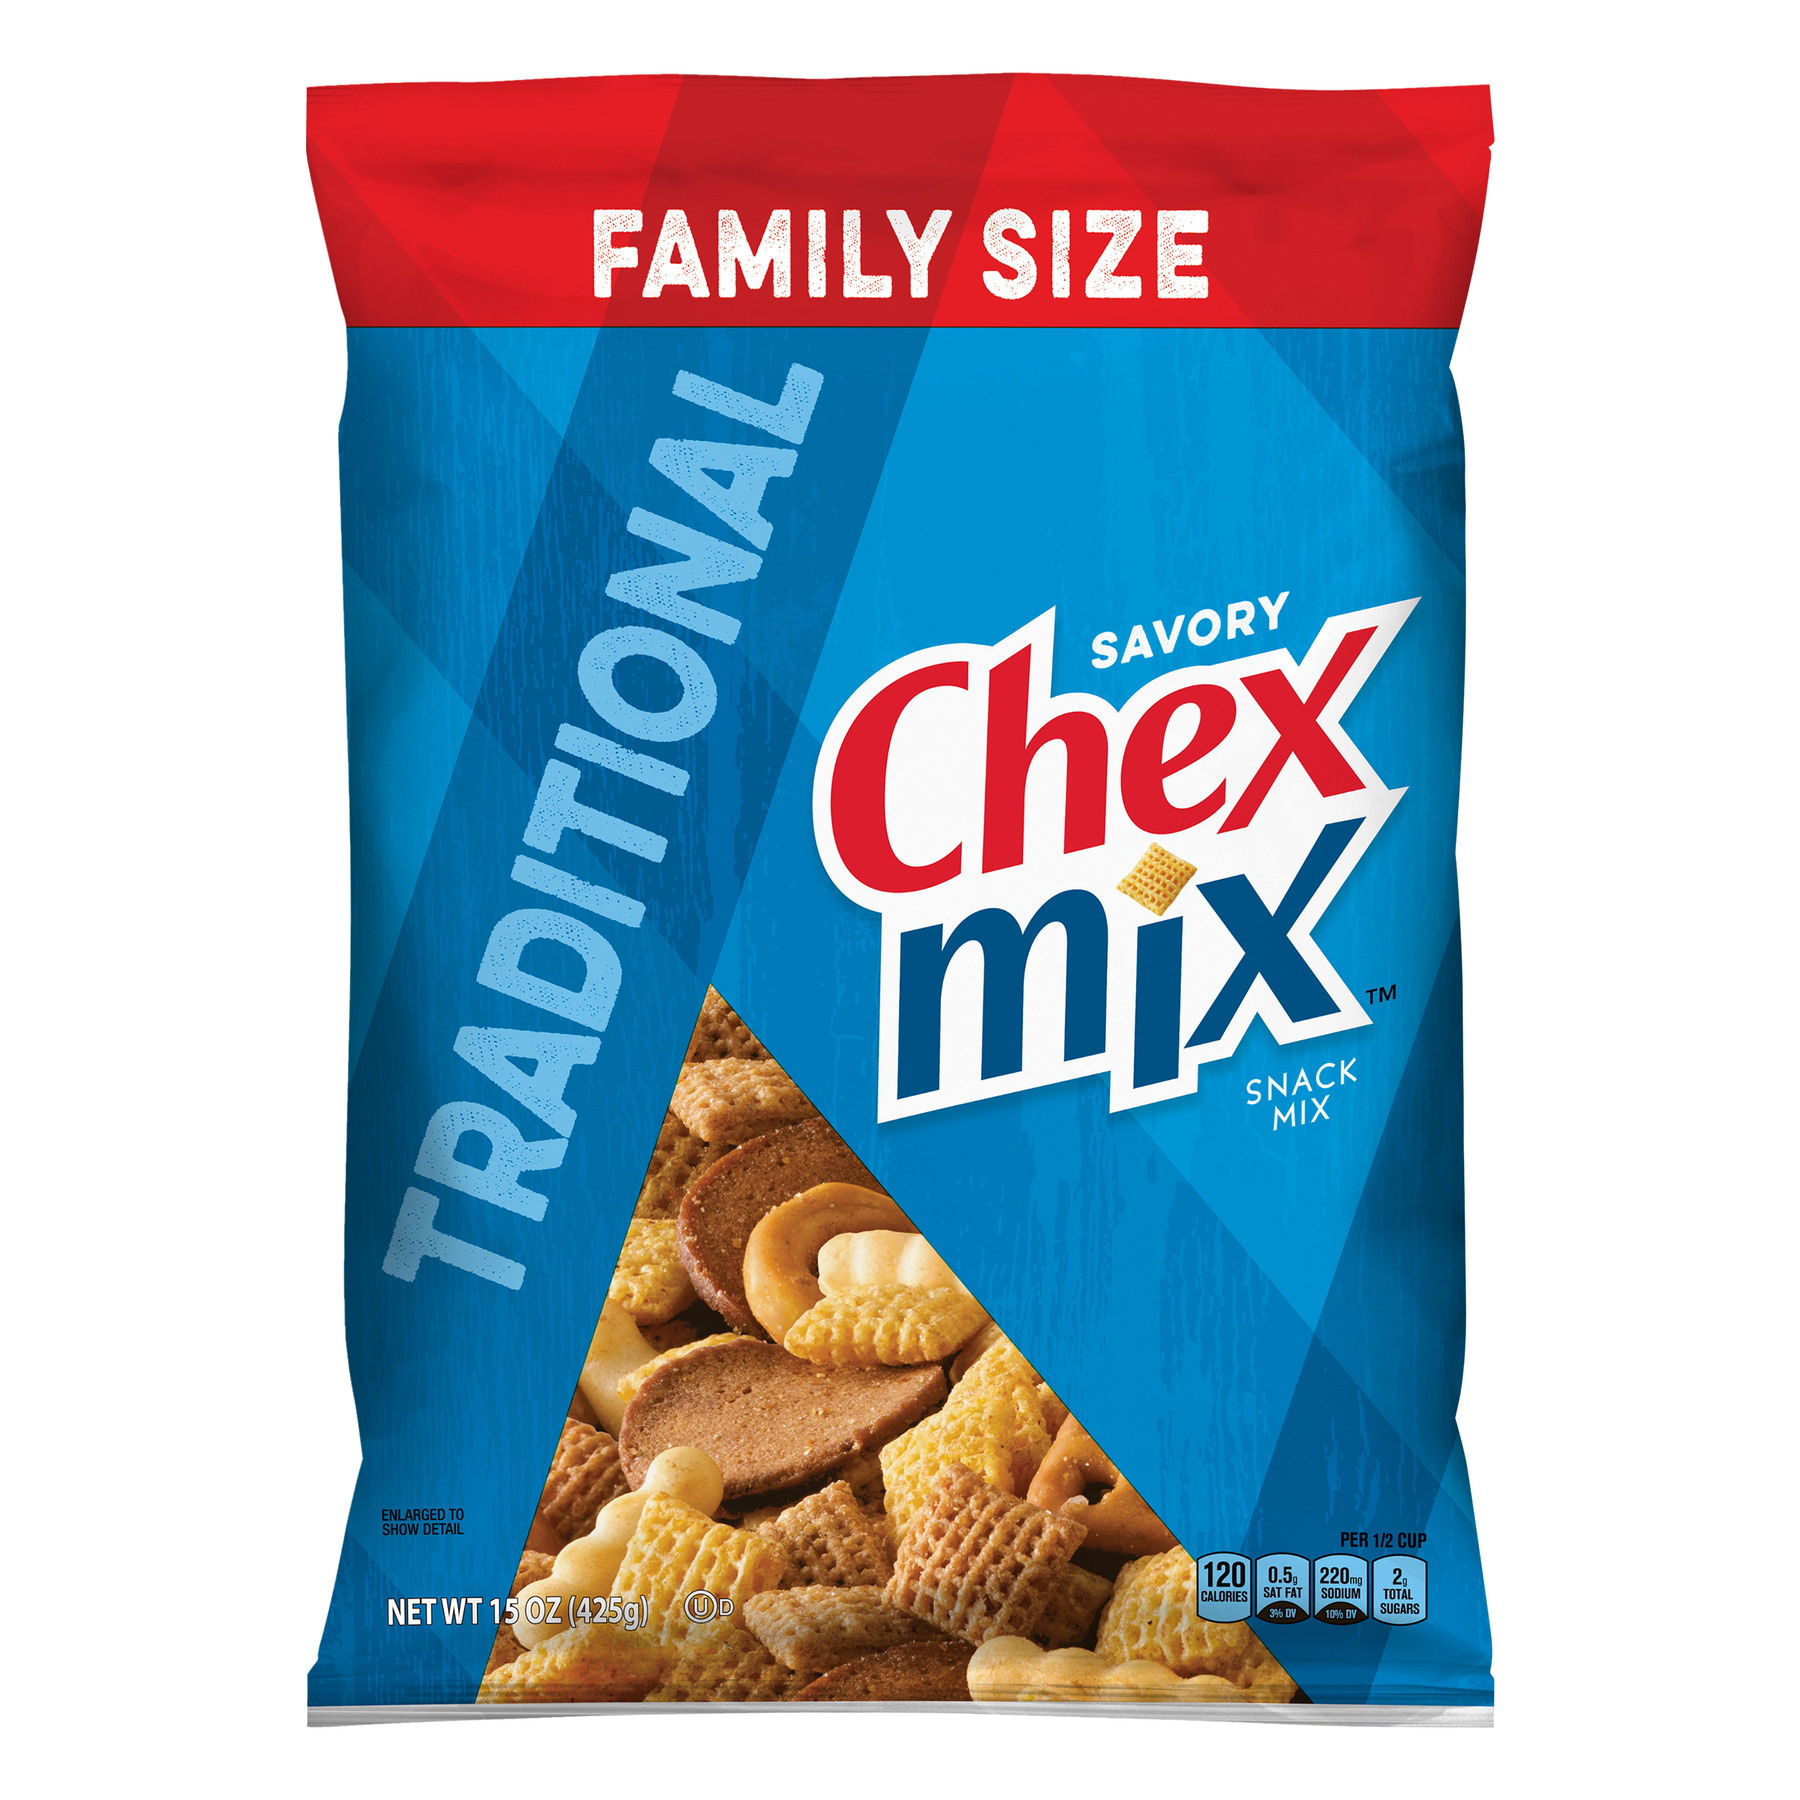 Chex Mix Traditional Savory Snack Mix, 15 oz Bag